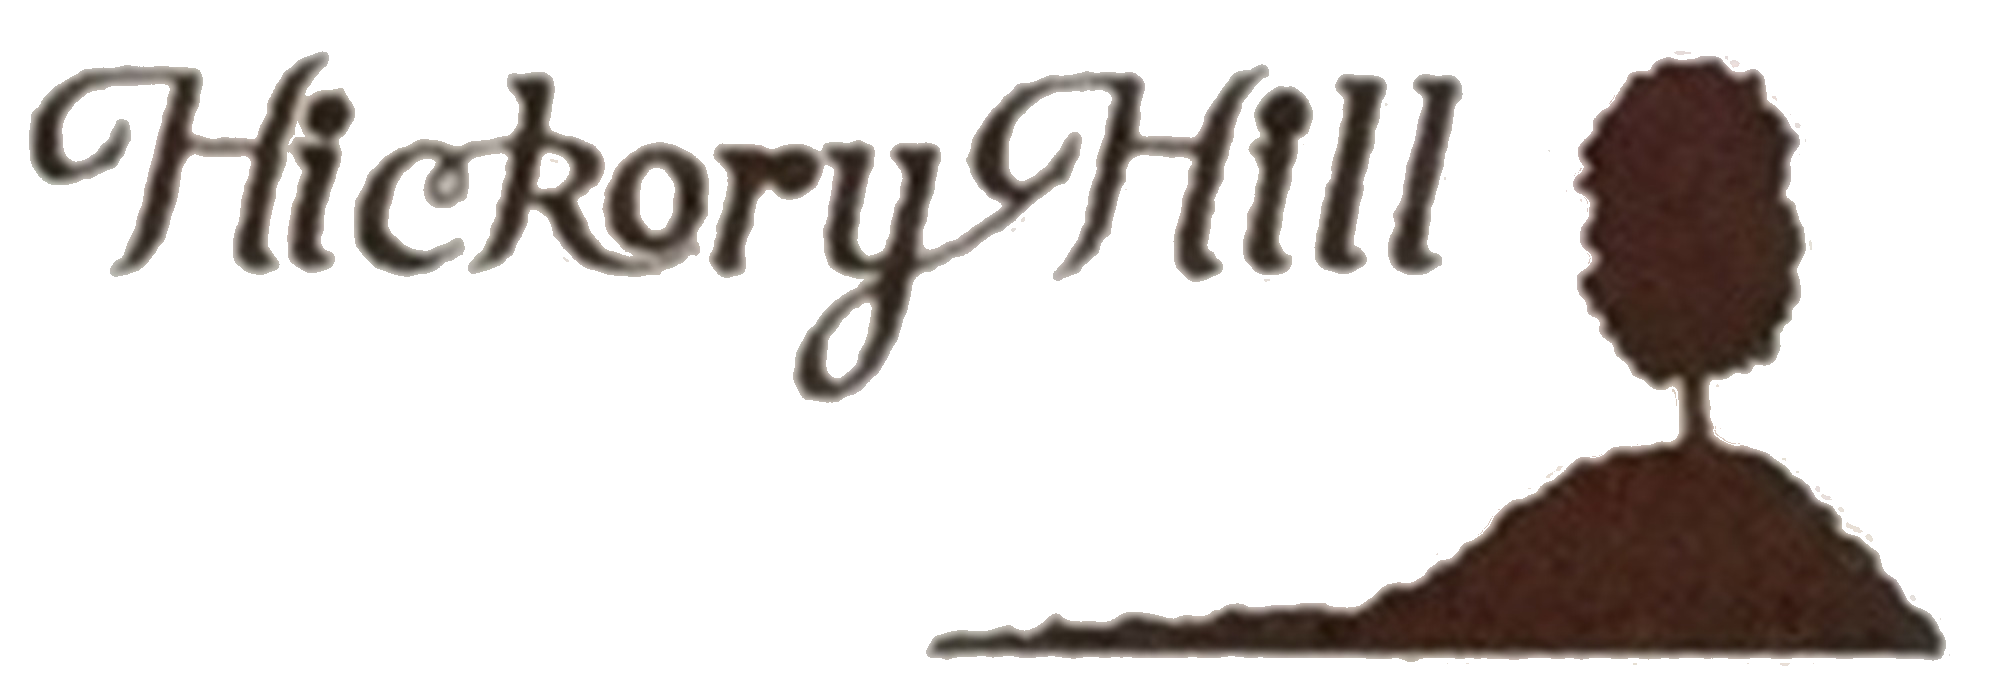 Hickory Hill Original Logo